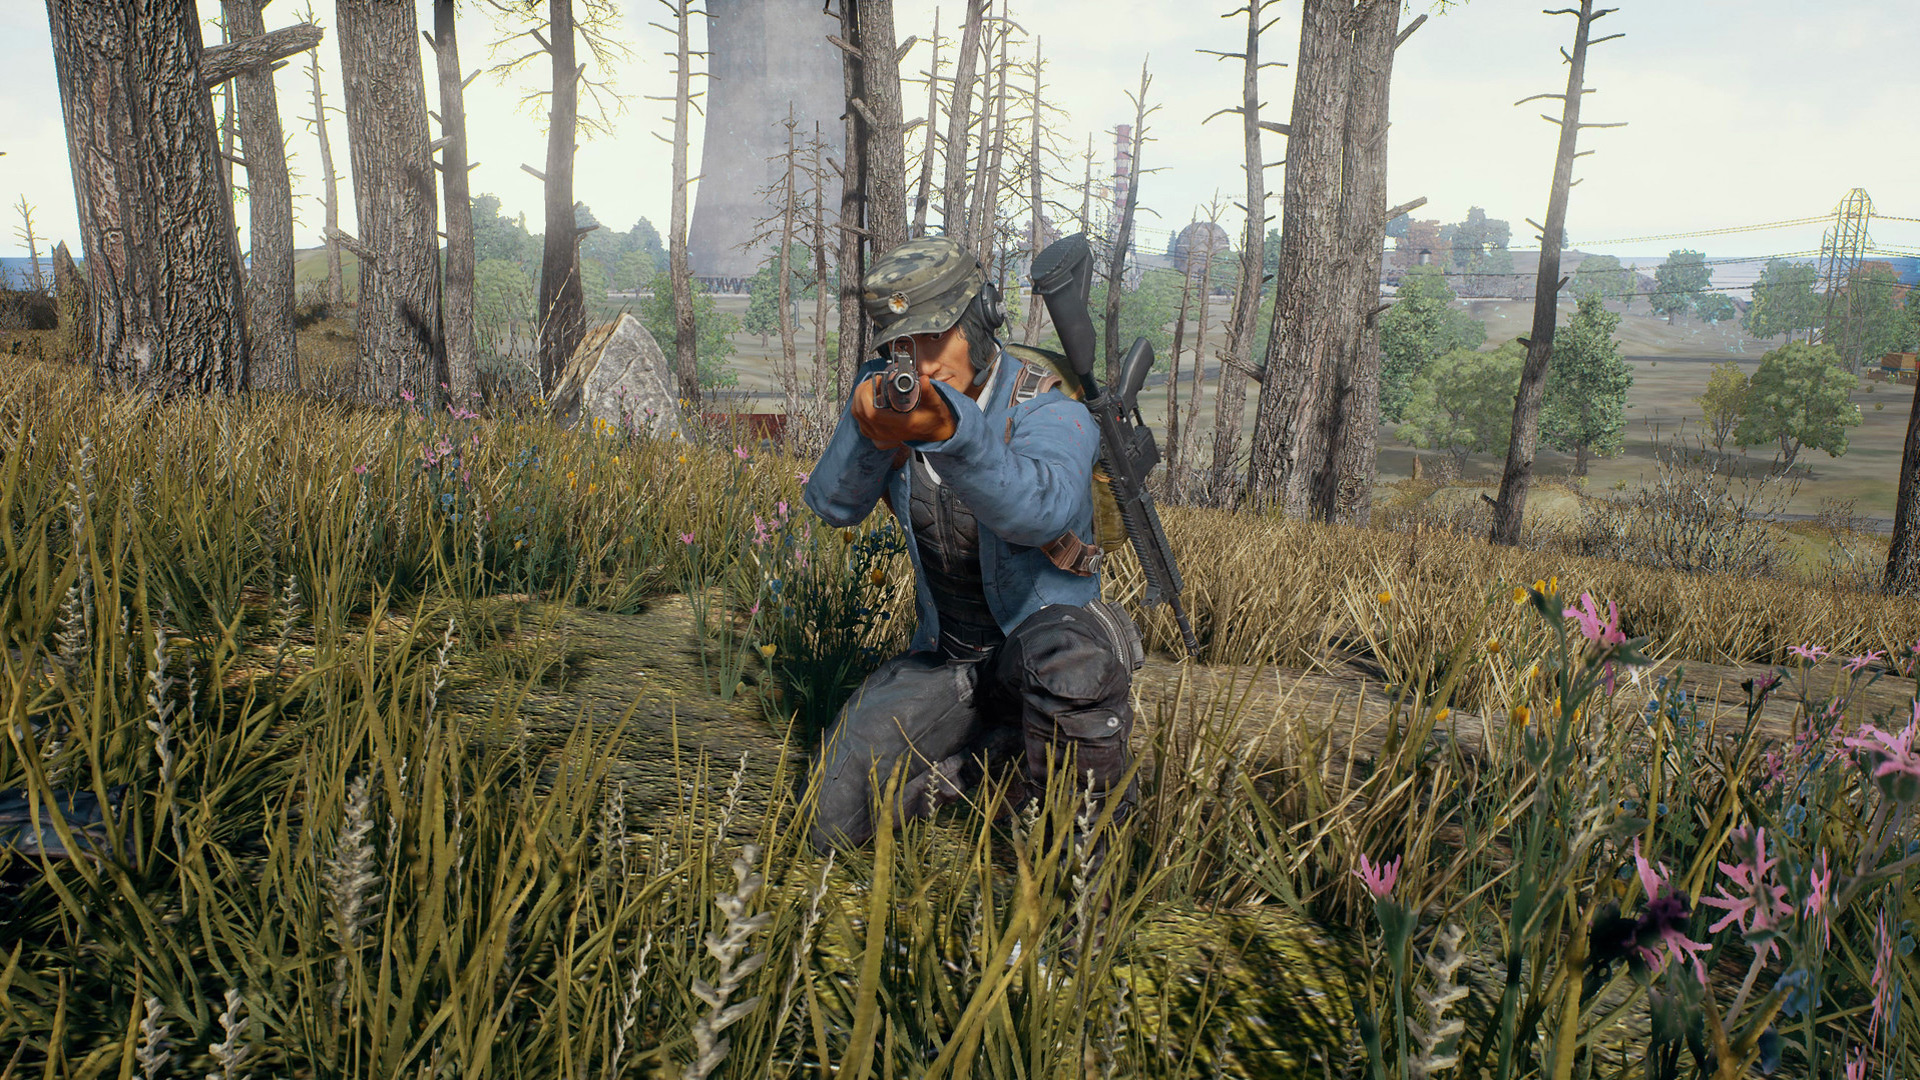 Microsoft in Talks to Extend PlayerUnknown's Battlegrounds Exclusive Deal